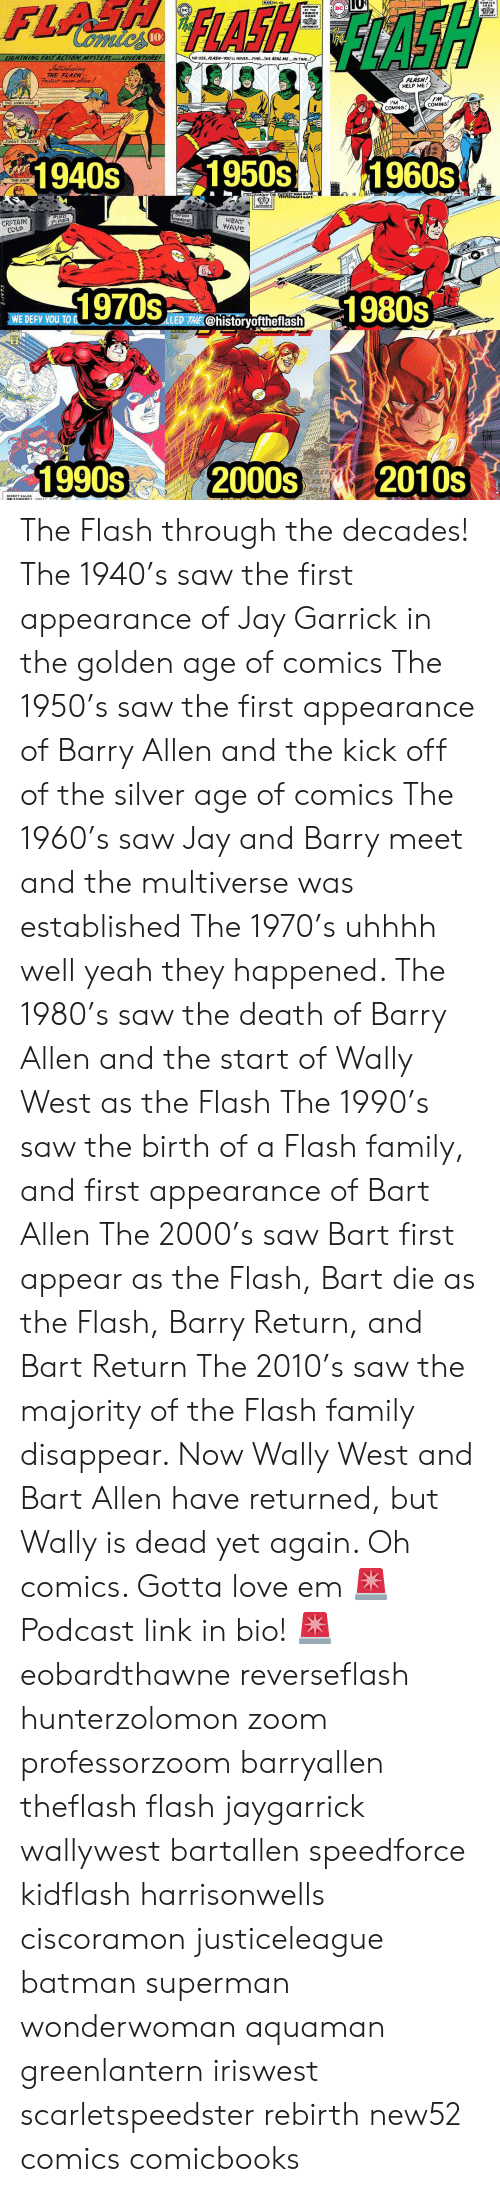 """Batman, Family, and Jay: DC  10  NO USE, ALASH..YOU'LL NEVER  FIND,""""THE REAL ME  IN TIME  THE FLASH  FLASH!  HELP ME!  THE HAWKMAN  I'M  COMING,o  IM  COMING  WY THUNDER  1940s501960s  THE WHIP  PUED  PIPER  CAPTAIN  roLD  HEAT-  m1980s  WE DEFY YOu TO  LLED THE(@historyoftheflash  1990s? 2000s 2010S The Flash through the decades! The 1940's saw the first appearance of Jay Garrick in the golden age of comics The 1950's saw the first appearance of Barry Allen and the kick off of the silver age of comics The 1960's saw Jay and Barry meet and the multiverse was established The 1970's uhhhh well yeah they happened. The 1980's saw the death of Barry Allen and the start of Wally West as the Flash The 1990's saw the birth of a Flash family, and first appearance of Bart Allen The 2000's saw Bart first appear as the Flash, Bart die as the Flash, Barry Return, and Bart Return The 2010's saw the majority of the Flash family disappear. Now Wally West and Bart Allen have returned, but Wally is dead yet again. Oh comics. Gotta love em 🚨Podcast link in bio! 🚨 eobardthawne reverseflash hunterzolomon zoom professorzoom barryallen theflash flash jaygarrick wallywest bartallen speedforce kidflash harrisonwells ciscoramon justiceleague batman superman wonderwoman aquaman greenlantern iriswest scarletspeedster rebirth new52 comics comicbooks"""